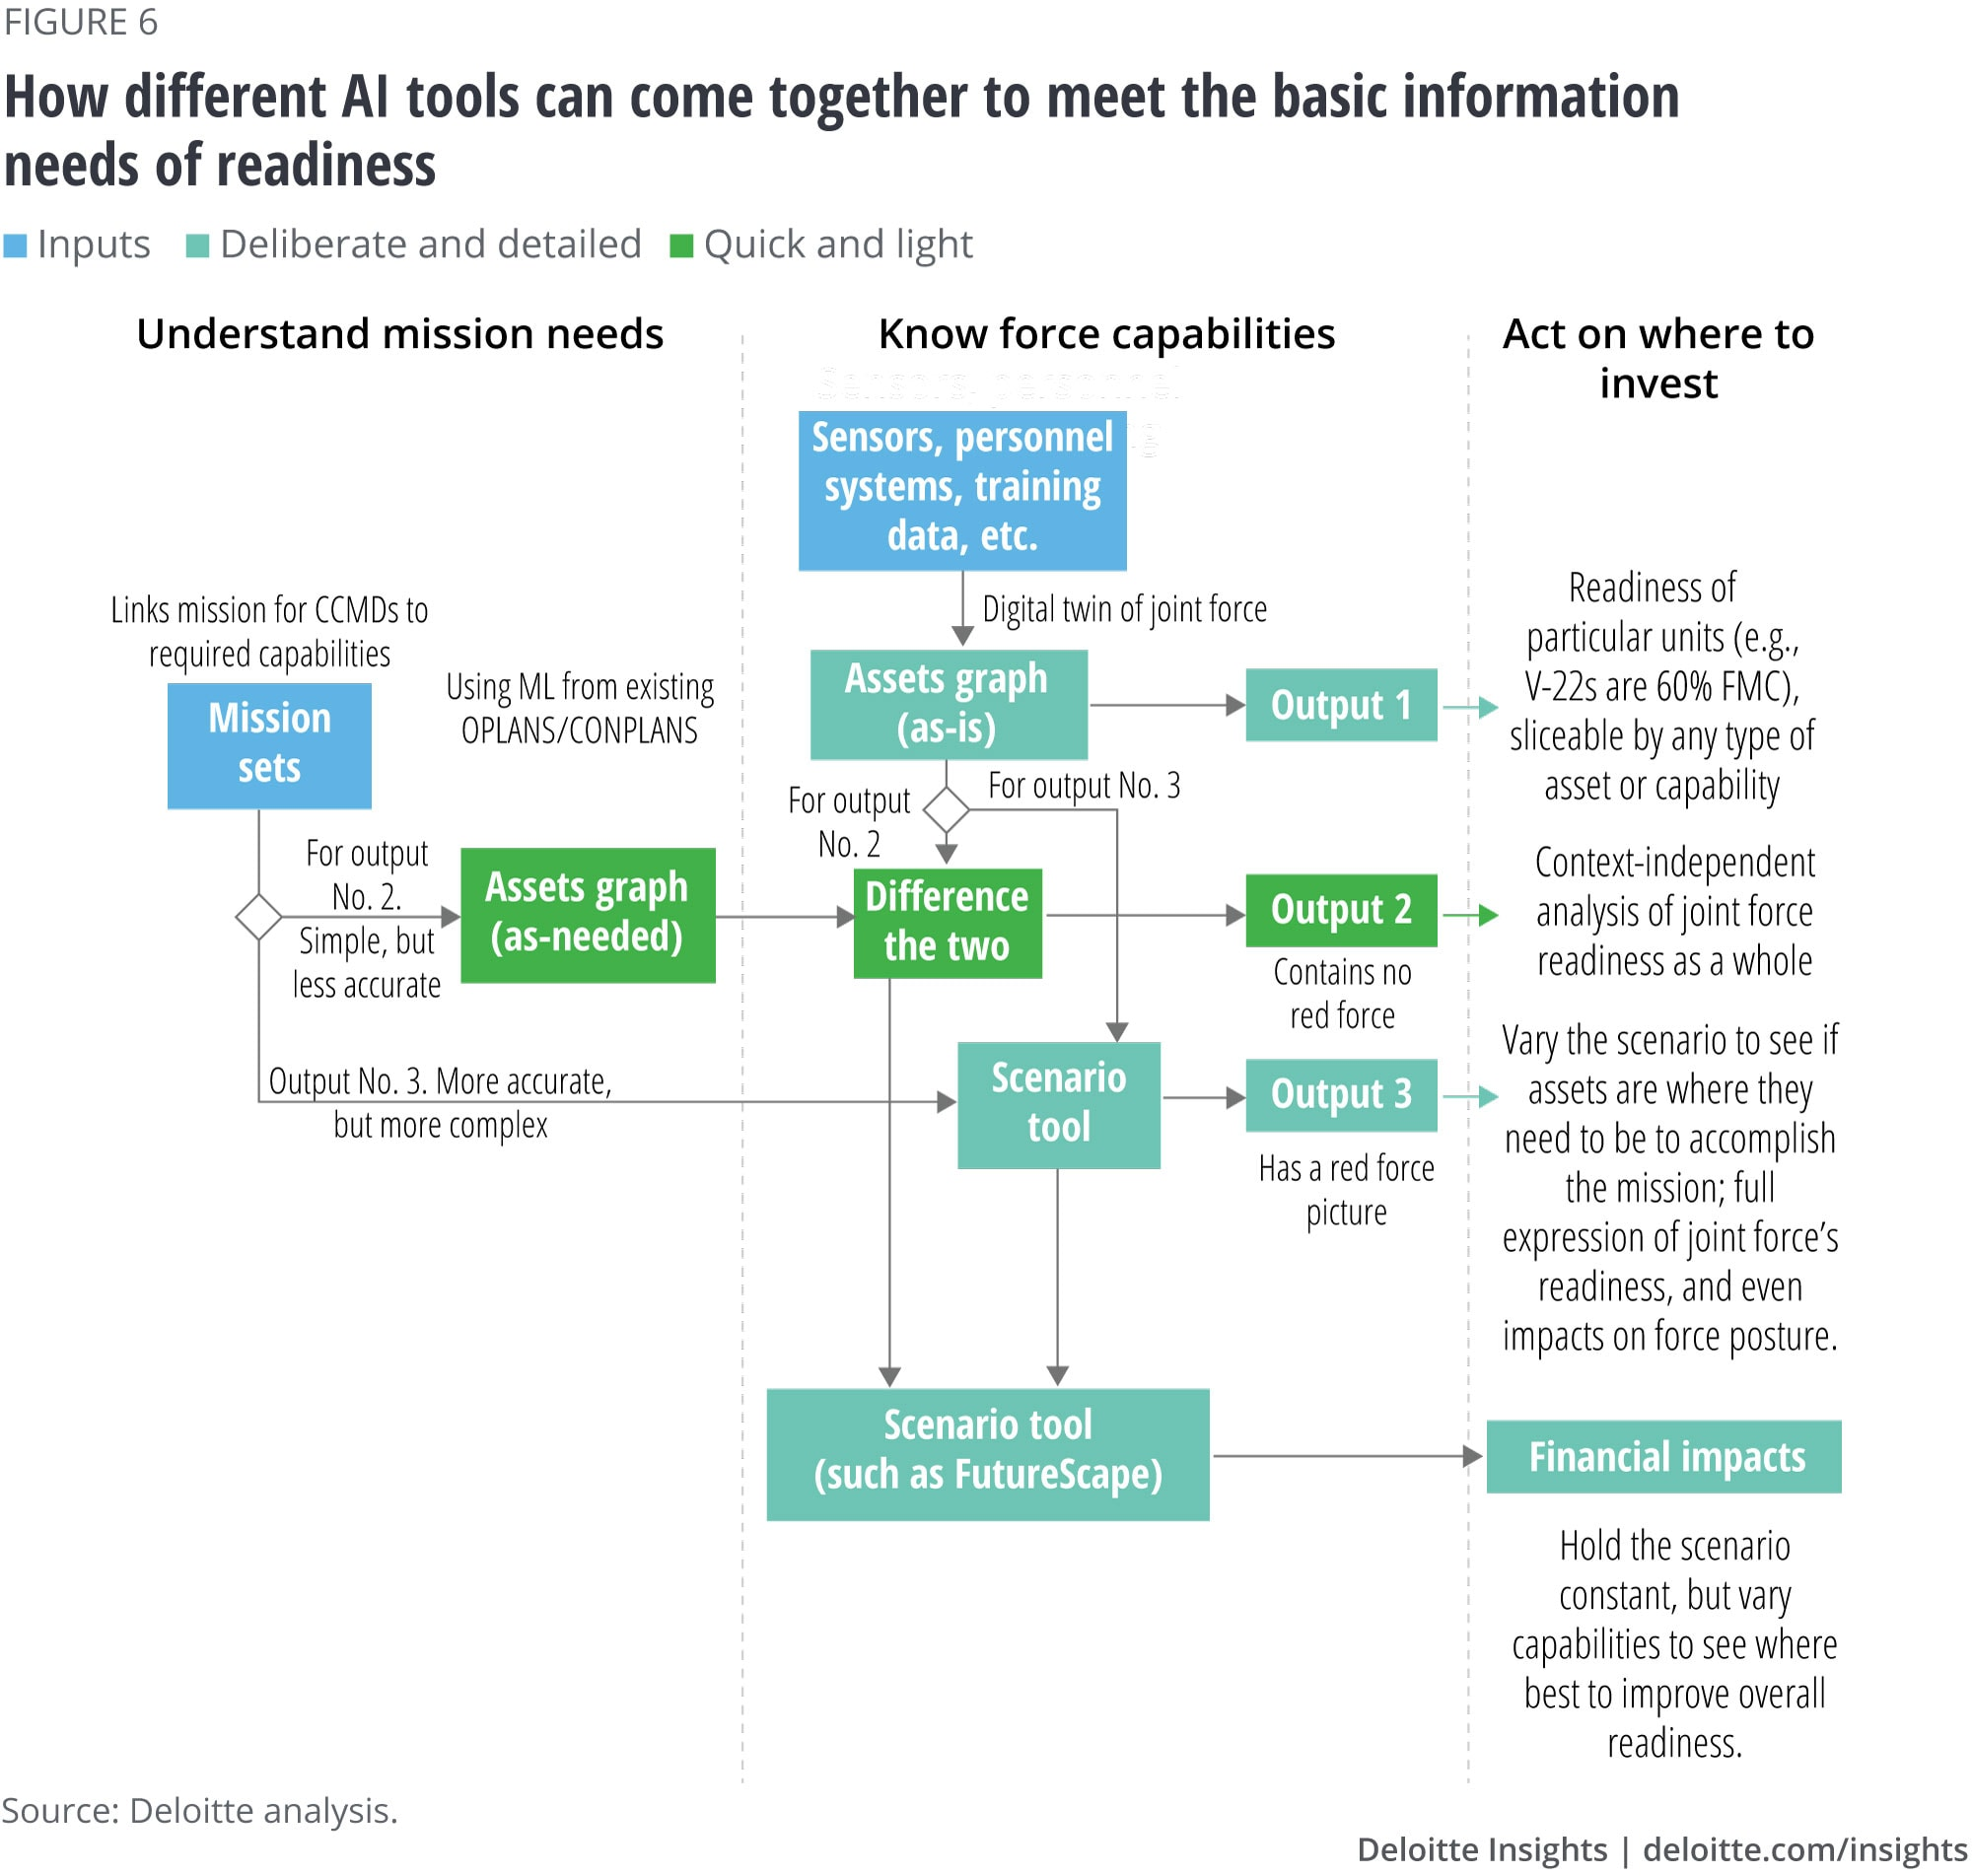 How different AI tools can come together to meet the basic information needs of readiness